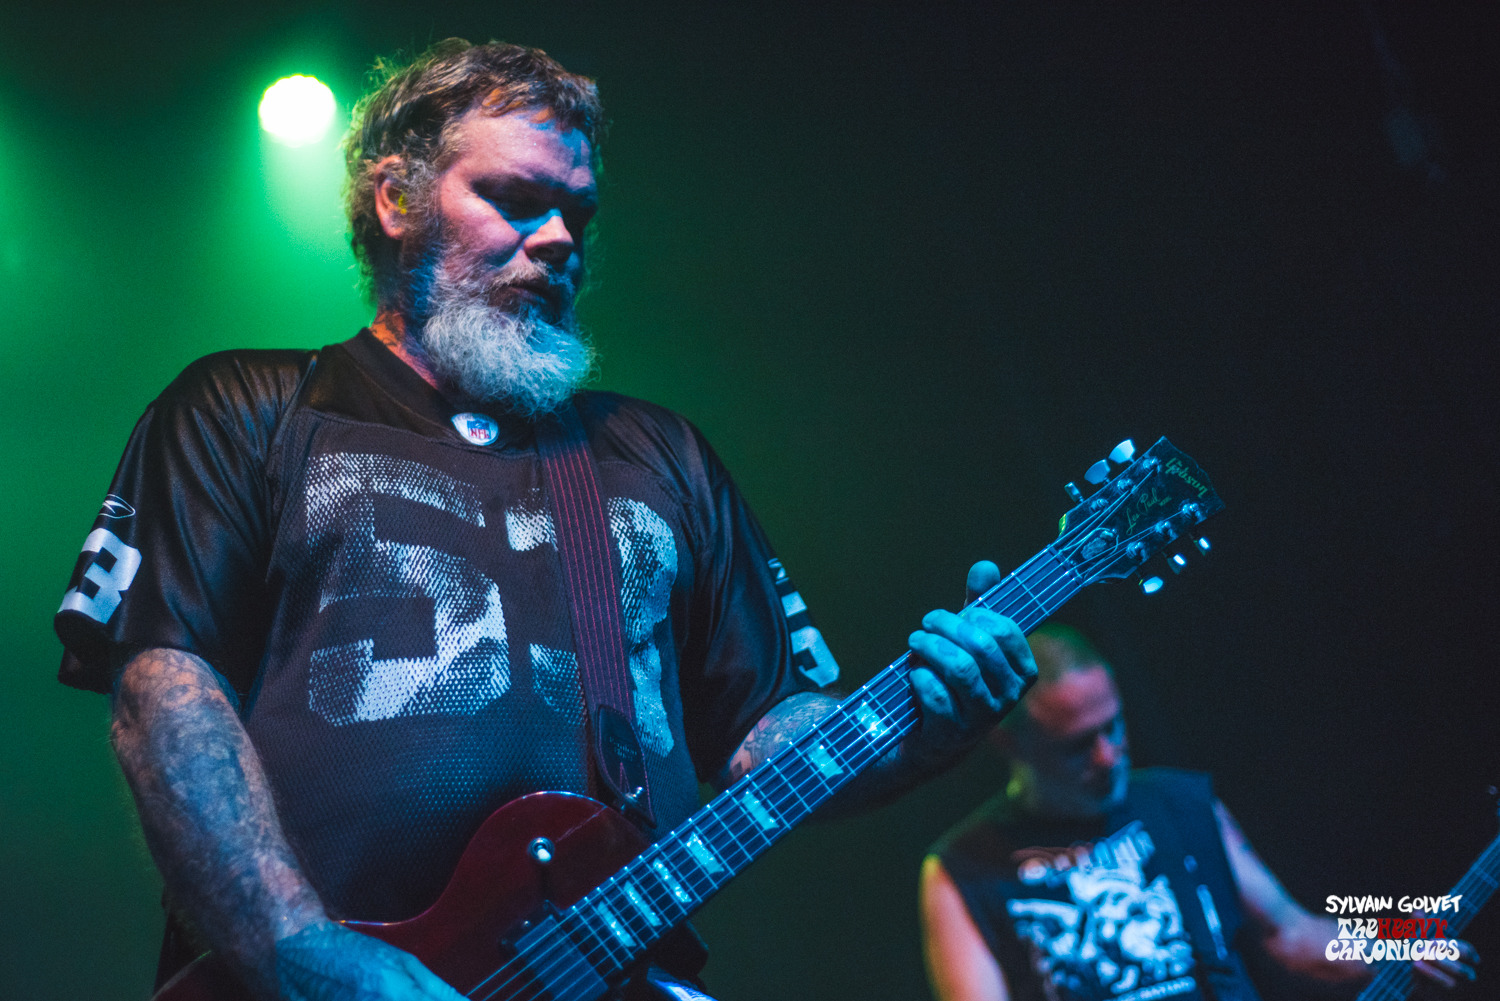 NEUROSIS-BATACLAN-THE-HEAVY-CHRONICLES-180719-9